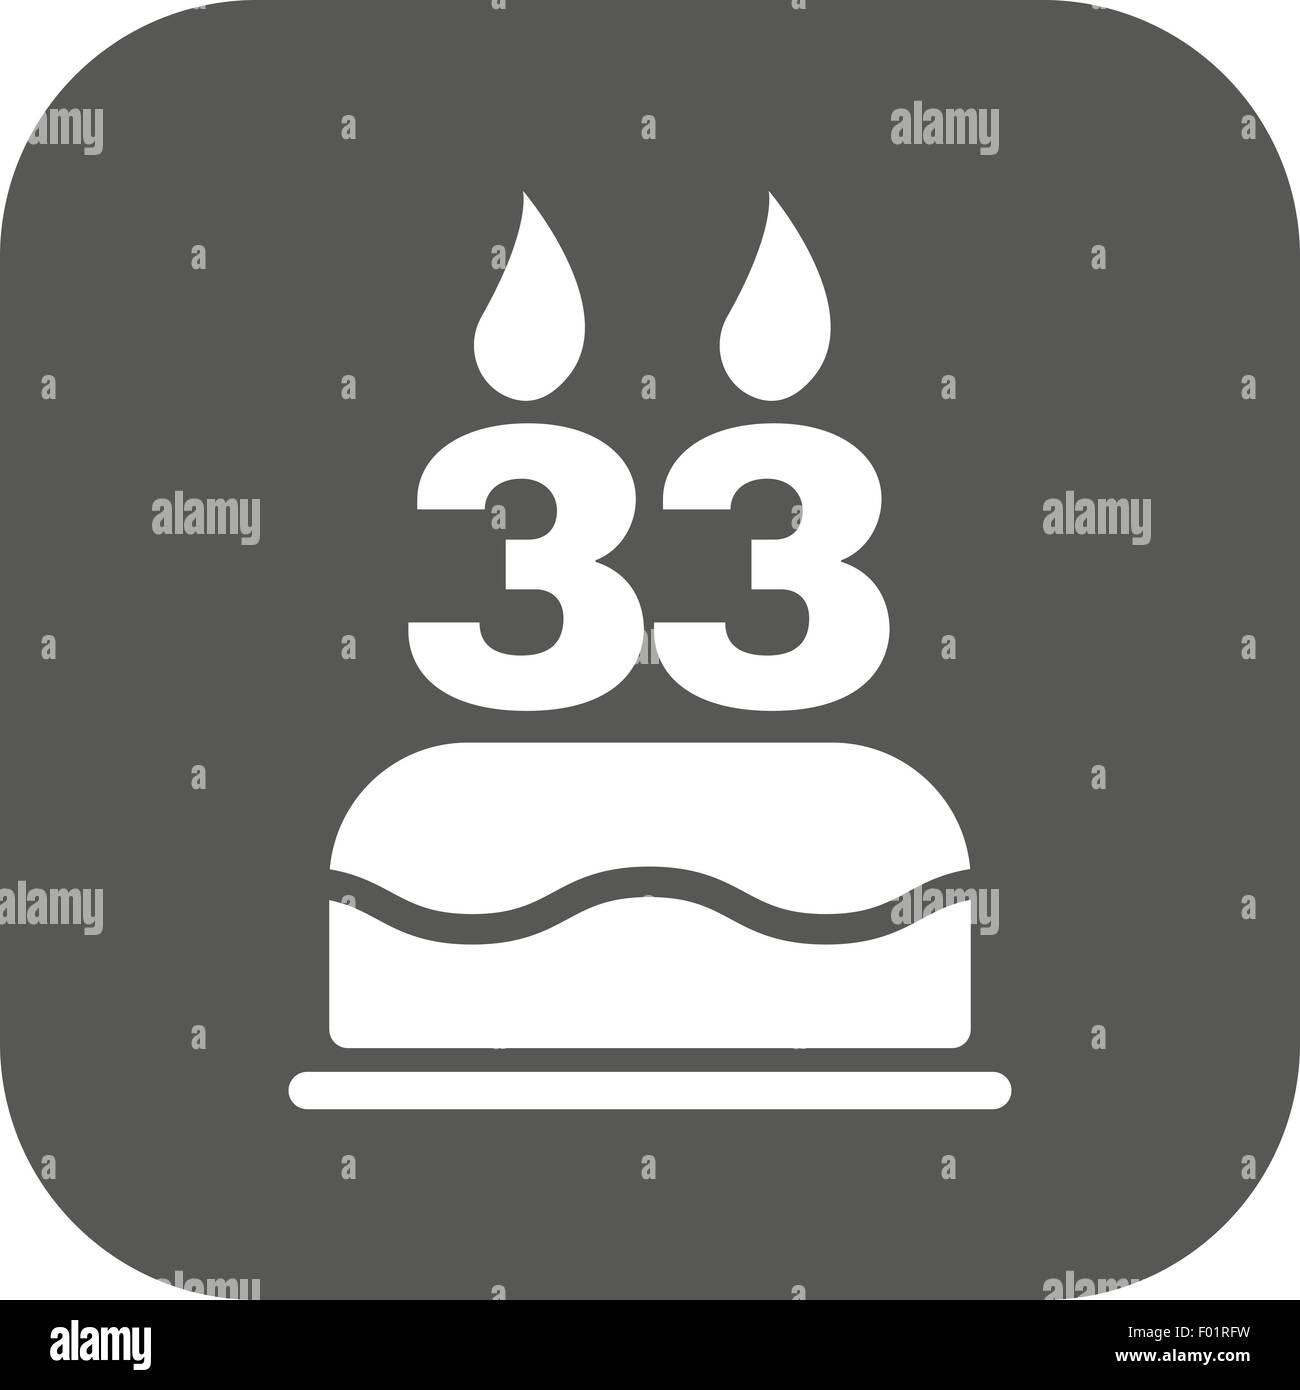 The Birthday Cake With Candles In Form Of Number 33 Icon Symbol